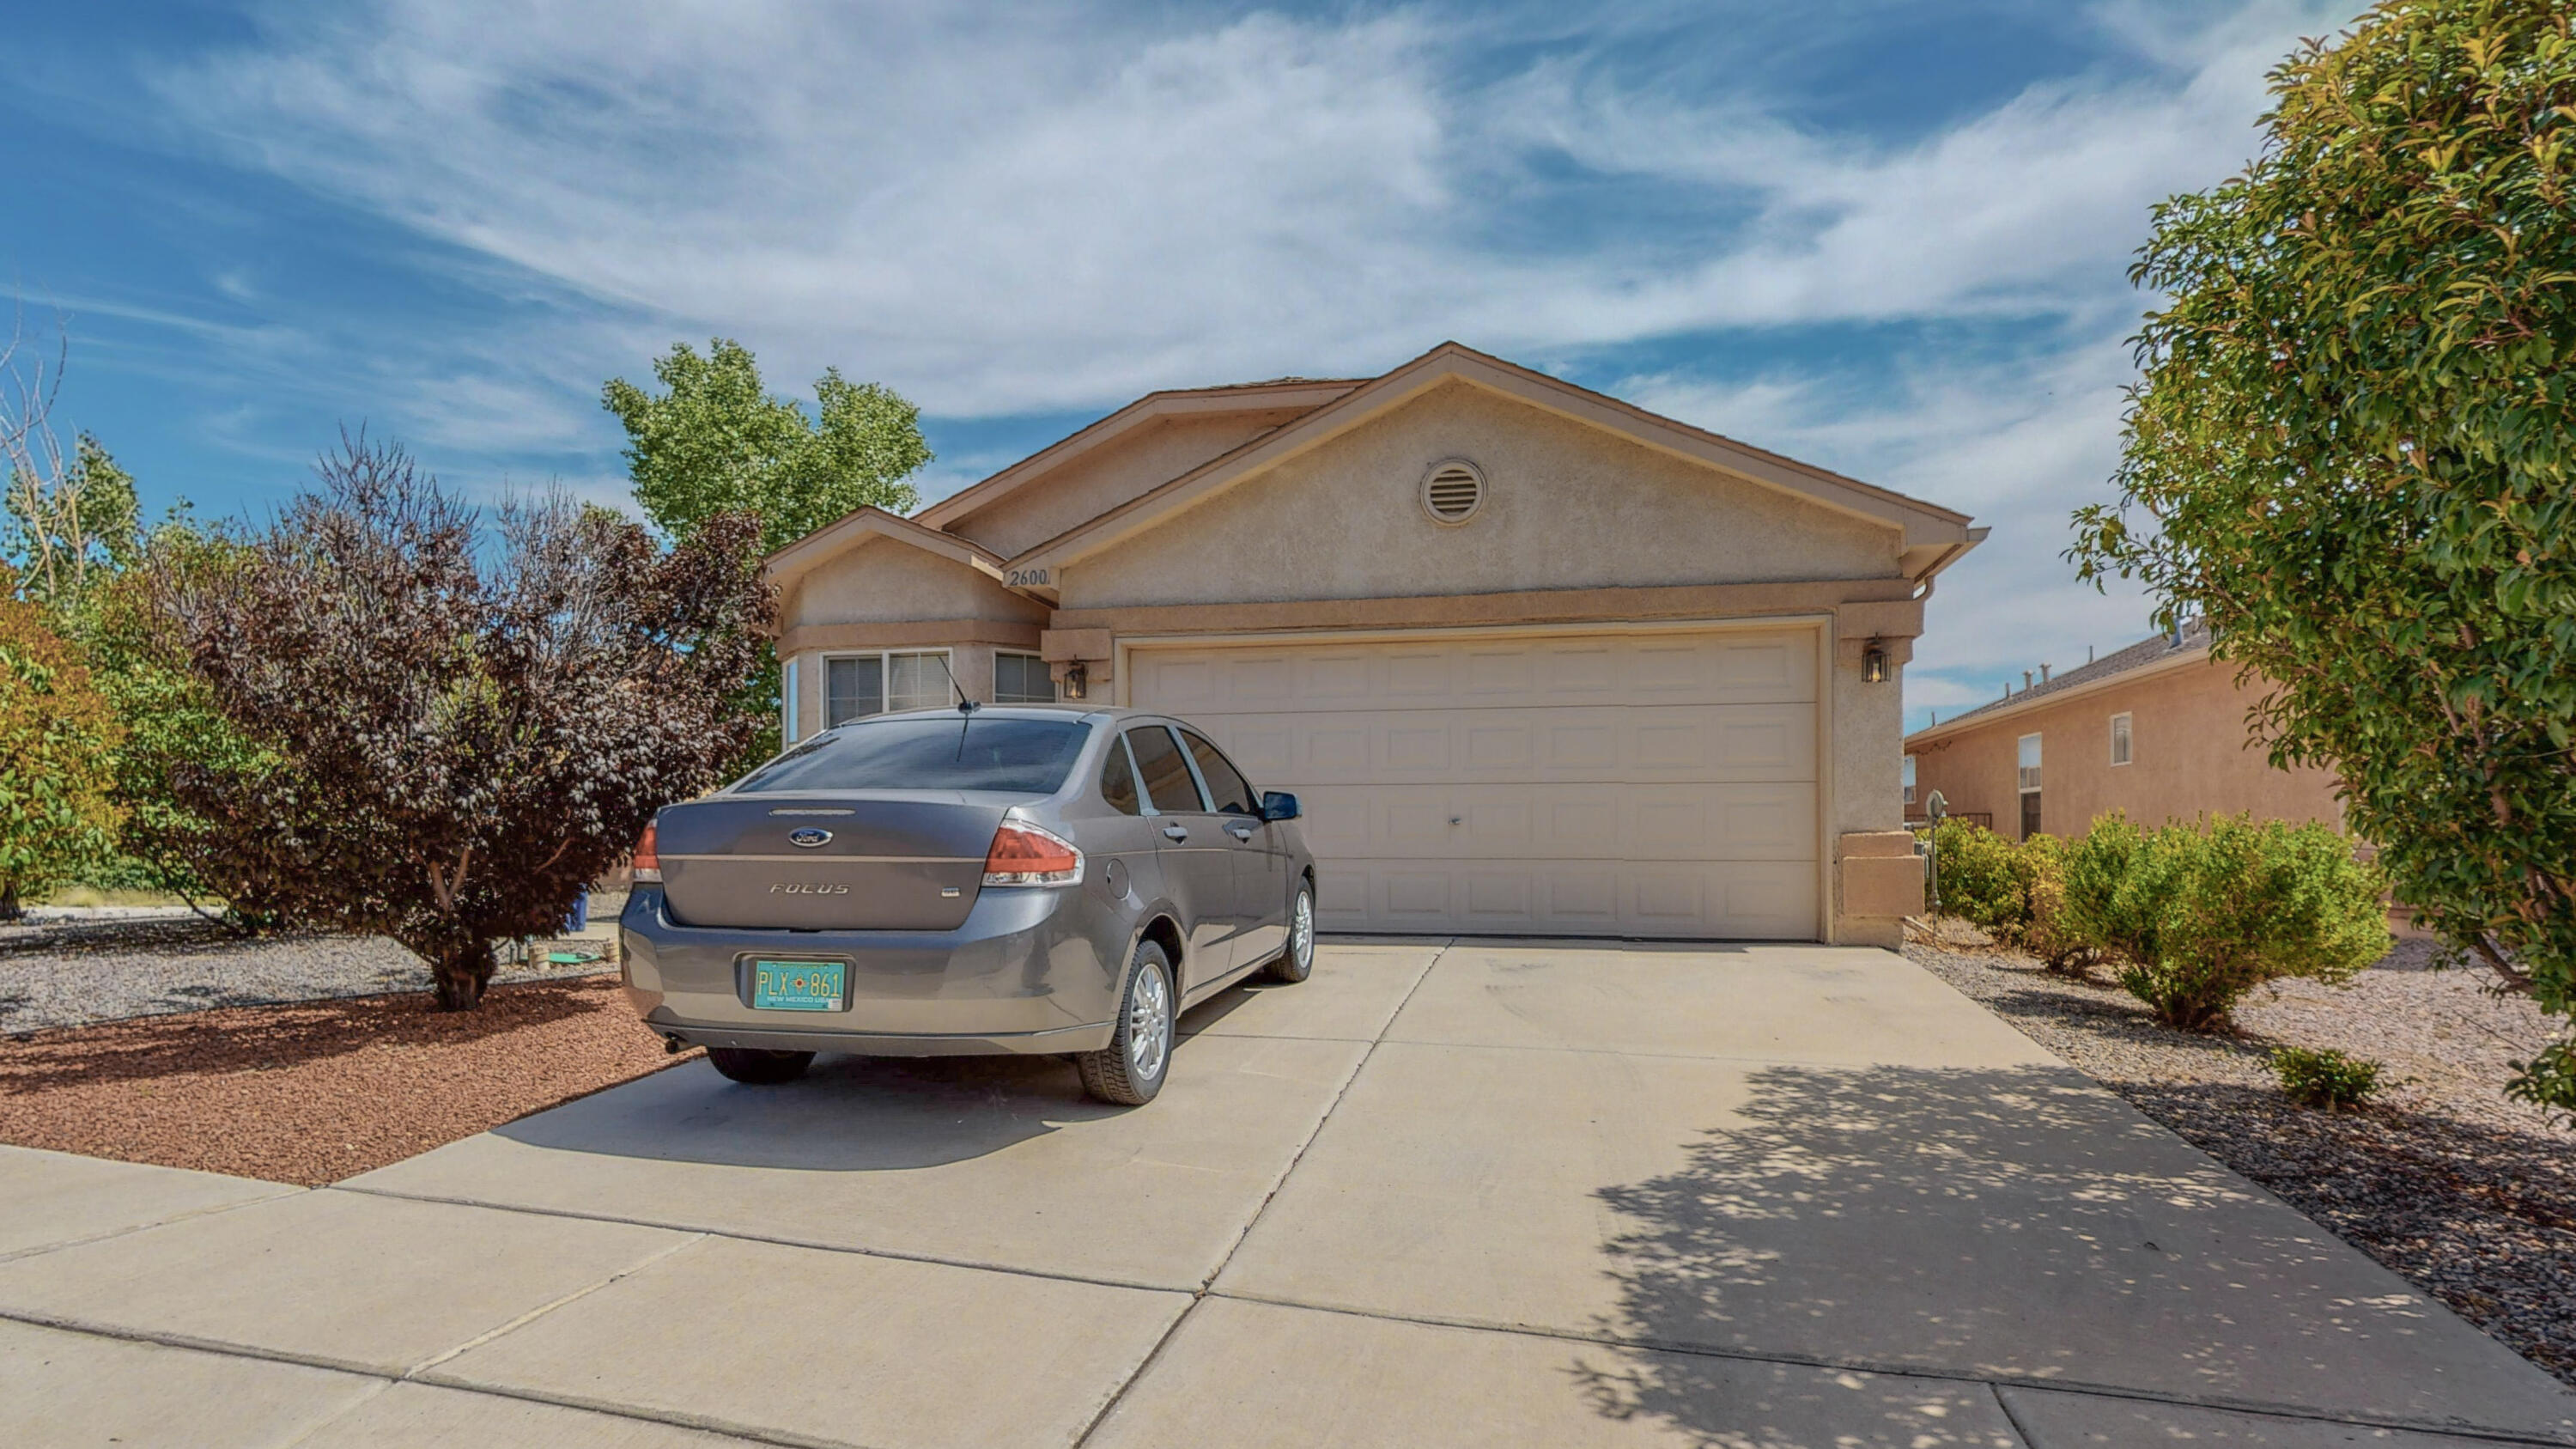 Stunning!  Rare single story home on a large corner lot now available!  Mountain VIEWS from the backyard!  Backyard access possible!  Open concept floor plan, vaulted ceilings, REFRIGERATED AIR, new water heater in 2021! Home features storm door at front entry, updated kitchen with new backsplash and new microwave, hallway wood accents, beautiful fully landscaped backyard with covered patio and painted concrete Must See!